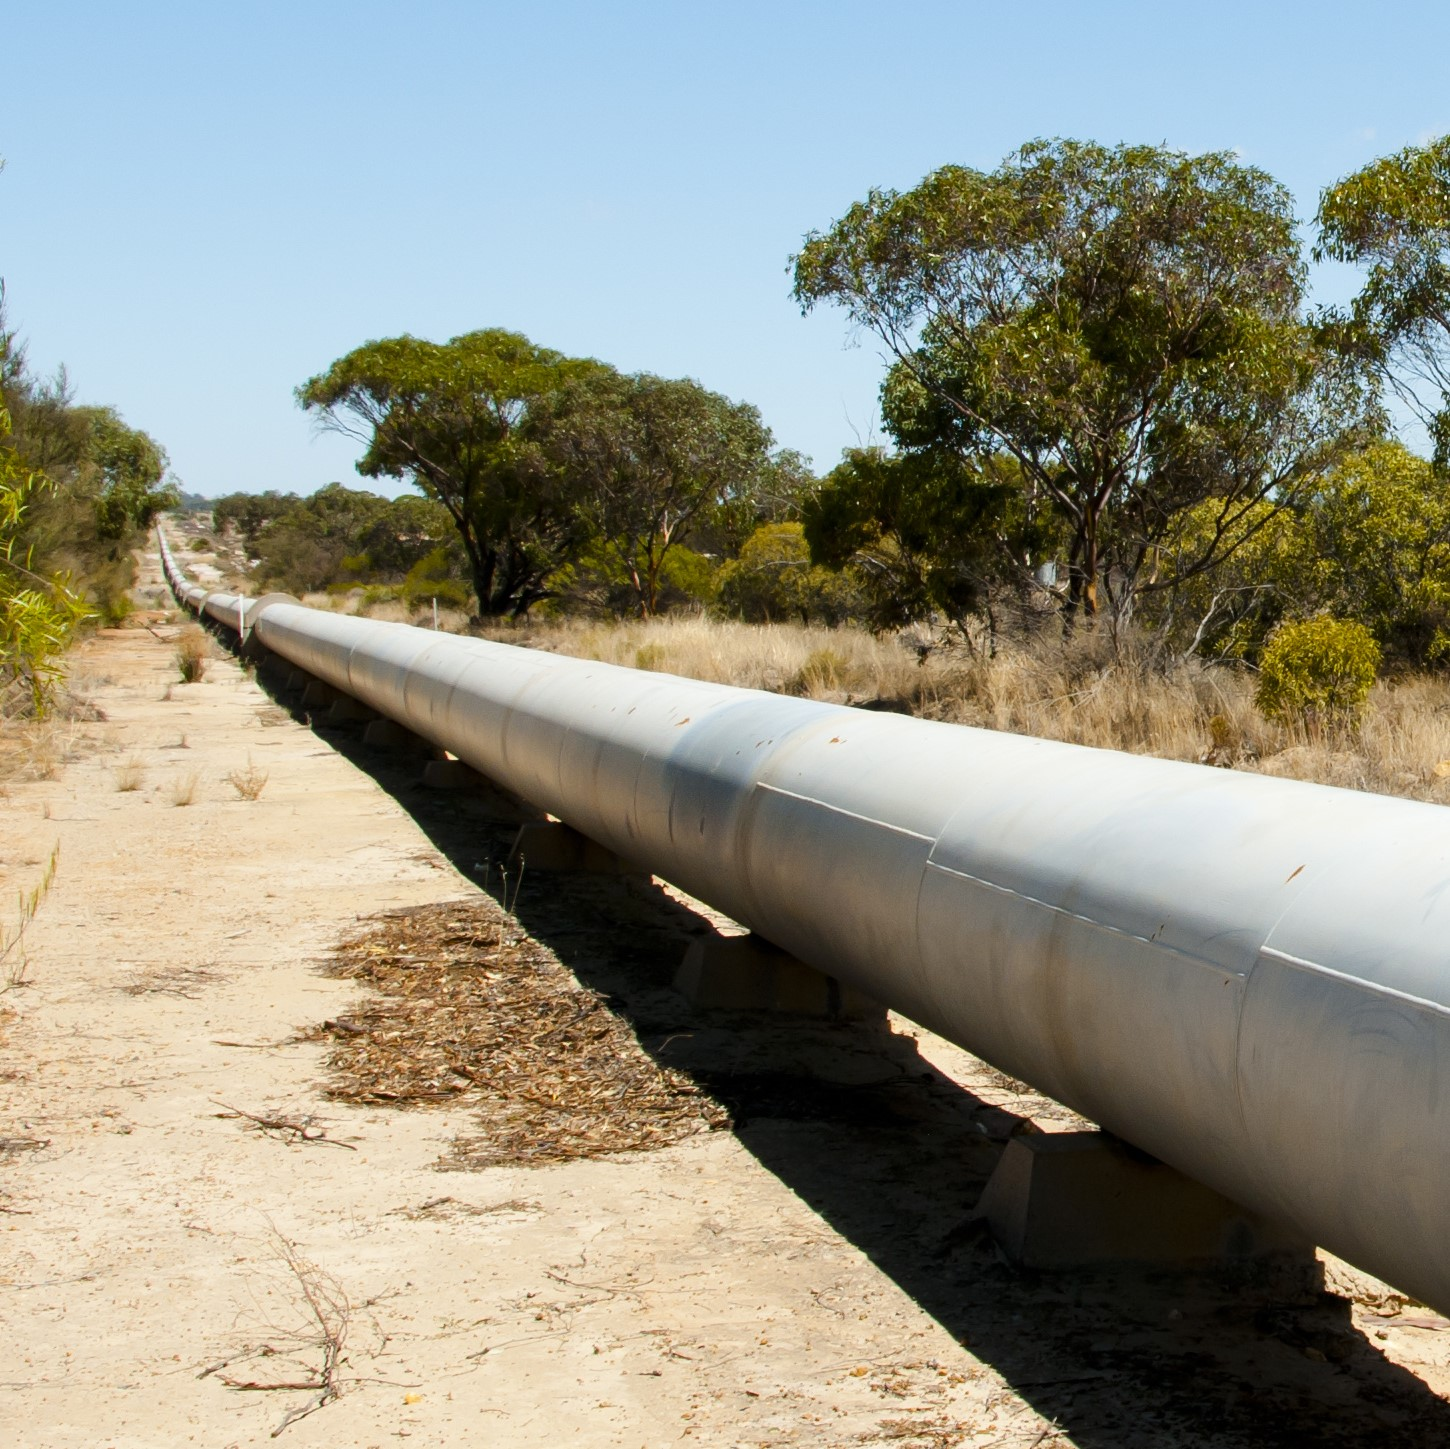 Government again break faith with Broken Hill community - refuse to release pipeline business case - Justin Field